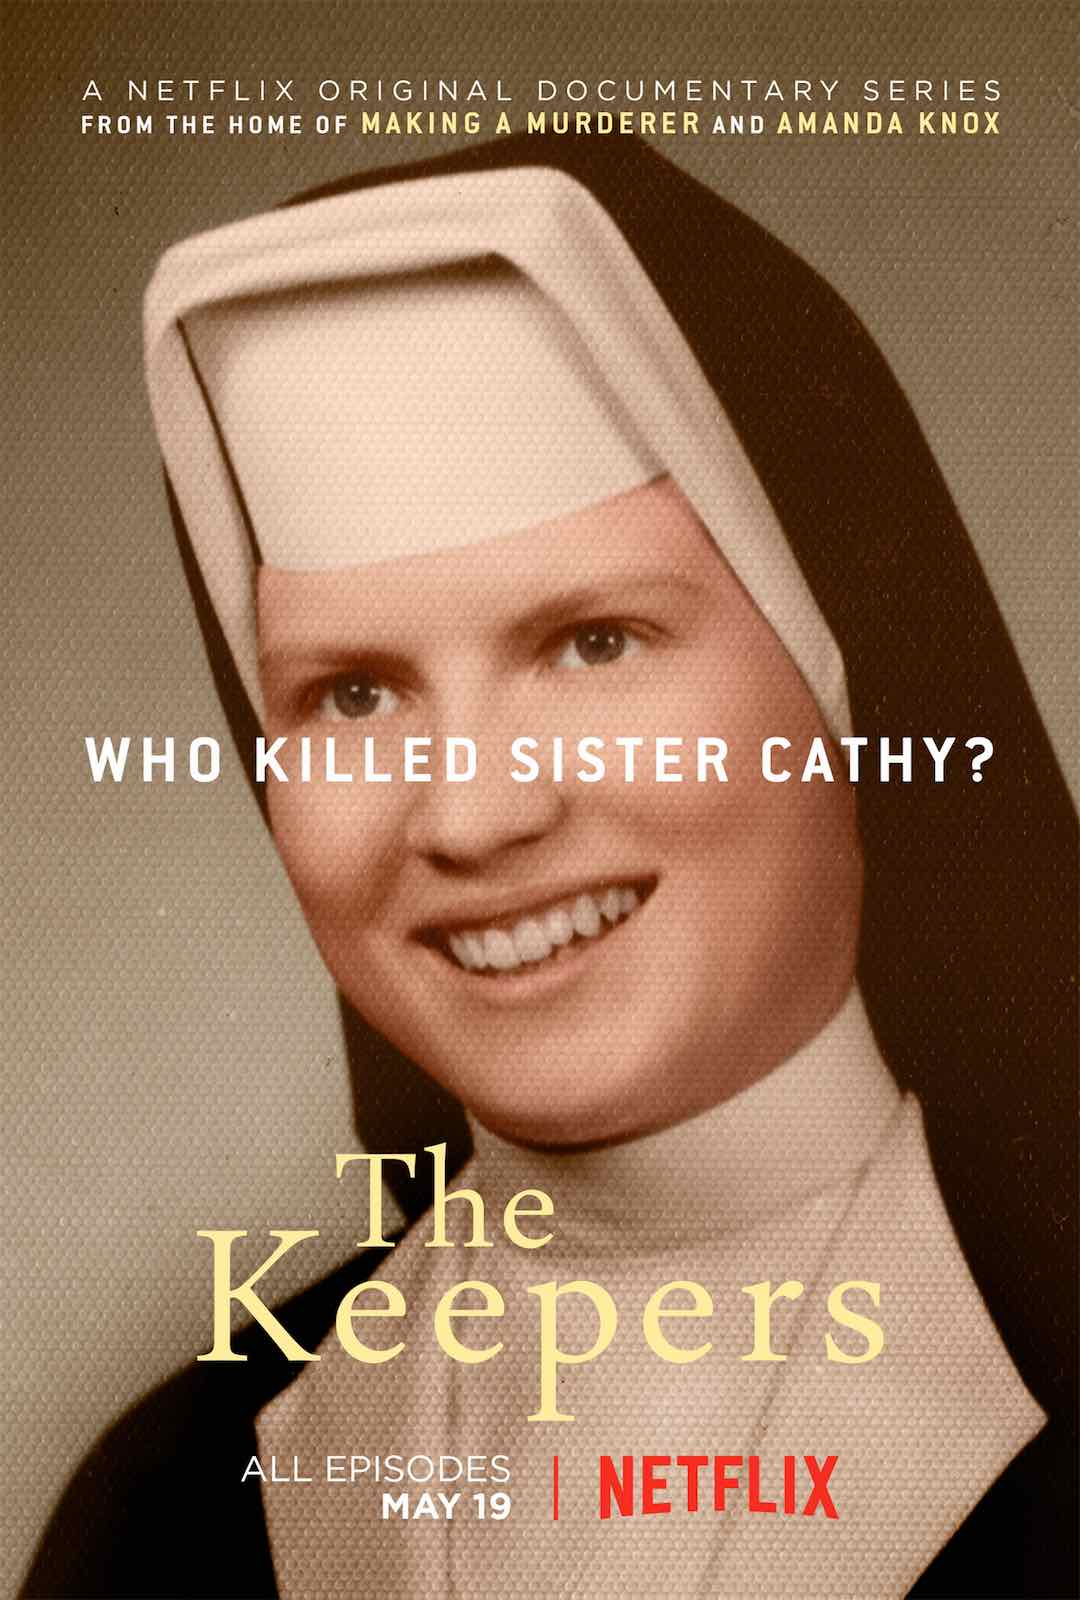 When your Netflix queue runs dry, 'The Keepers' and other content may provide you just the true crime to bingewatch next.